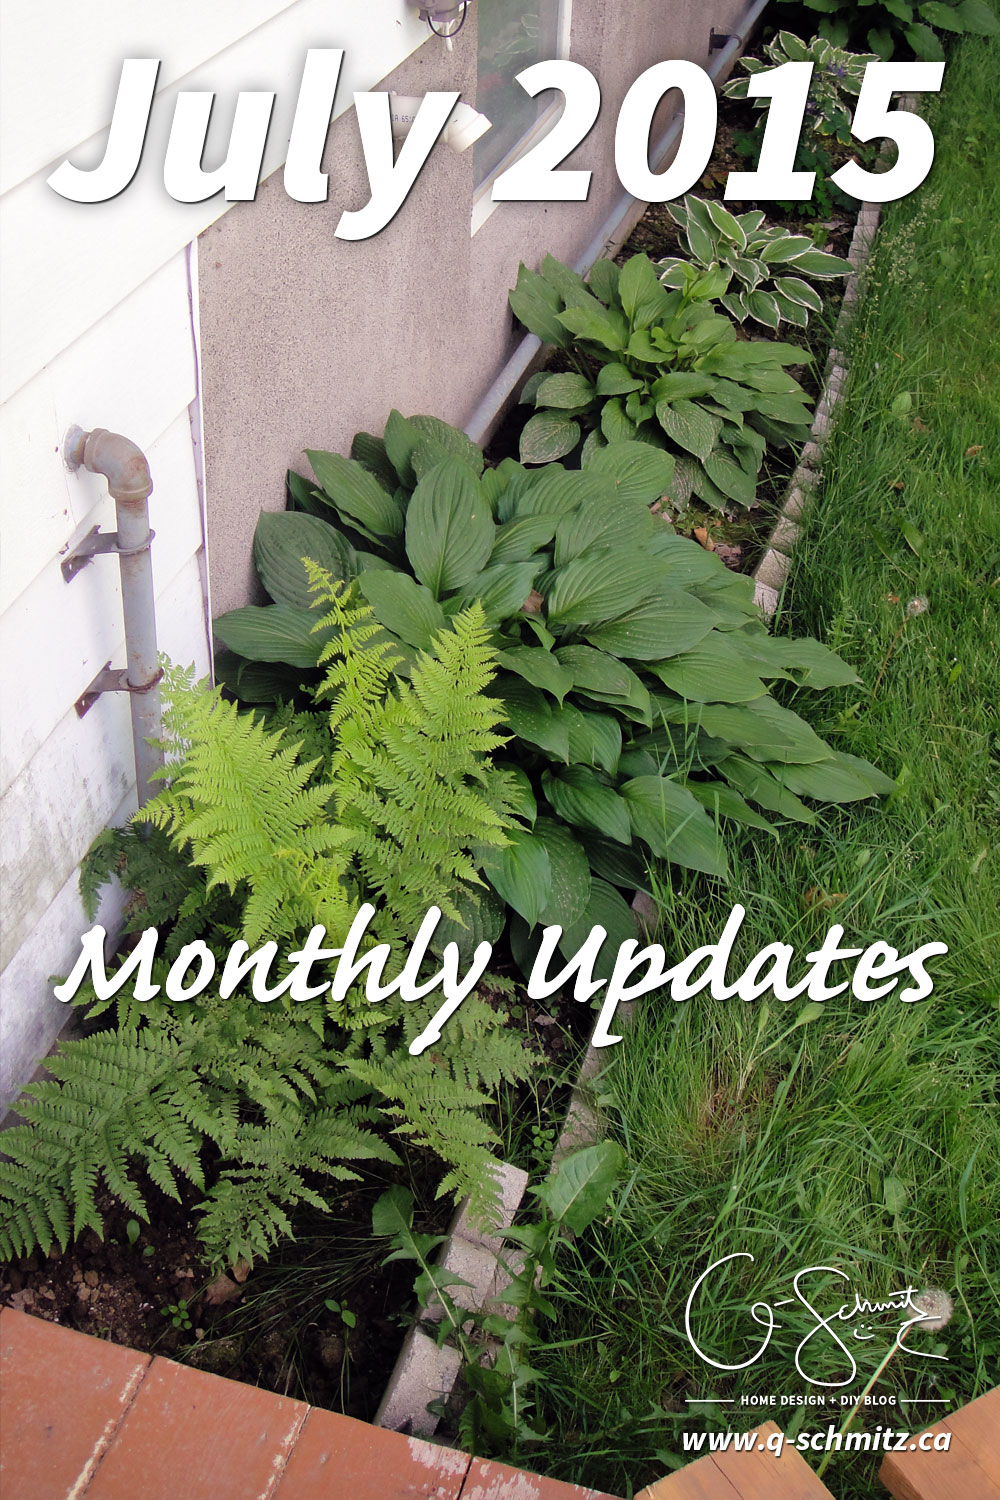 Is July a crazy-busy month for you too? I'm not sure August will be any better, but it seems like this summer is just flying by, even though it just barely started! Check out my monthly updates for July 2015.